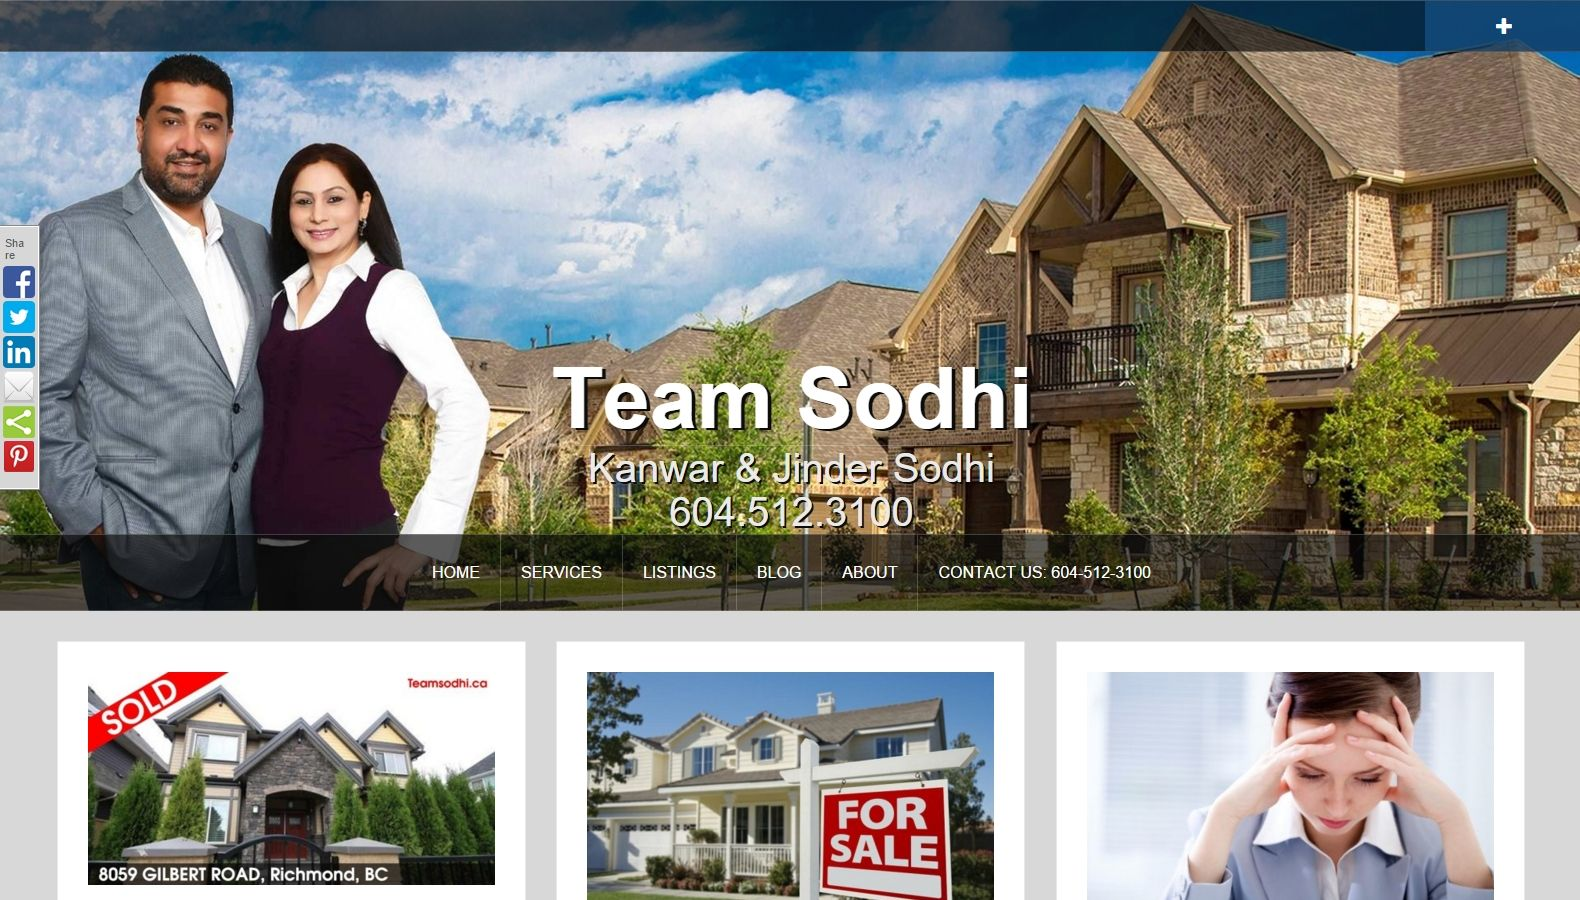 Realtor Team Sodhi - Jinder And Kanwar Sodhi - Website Designing By SEOTeam.ca